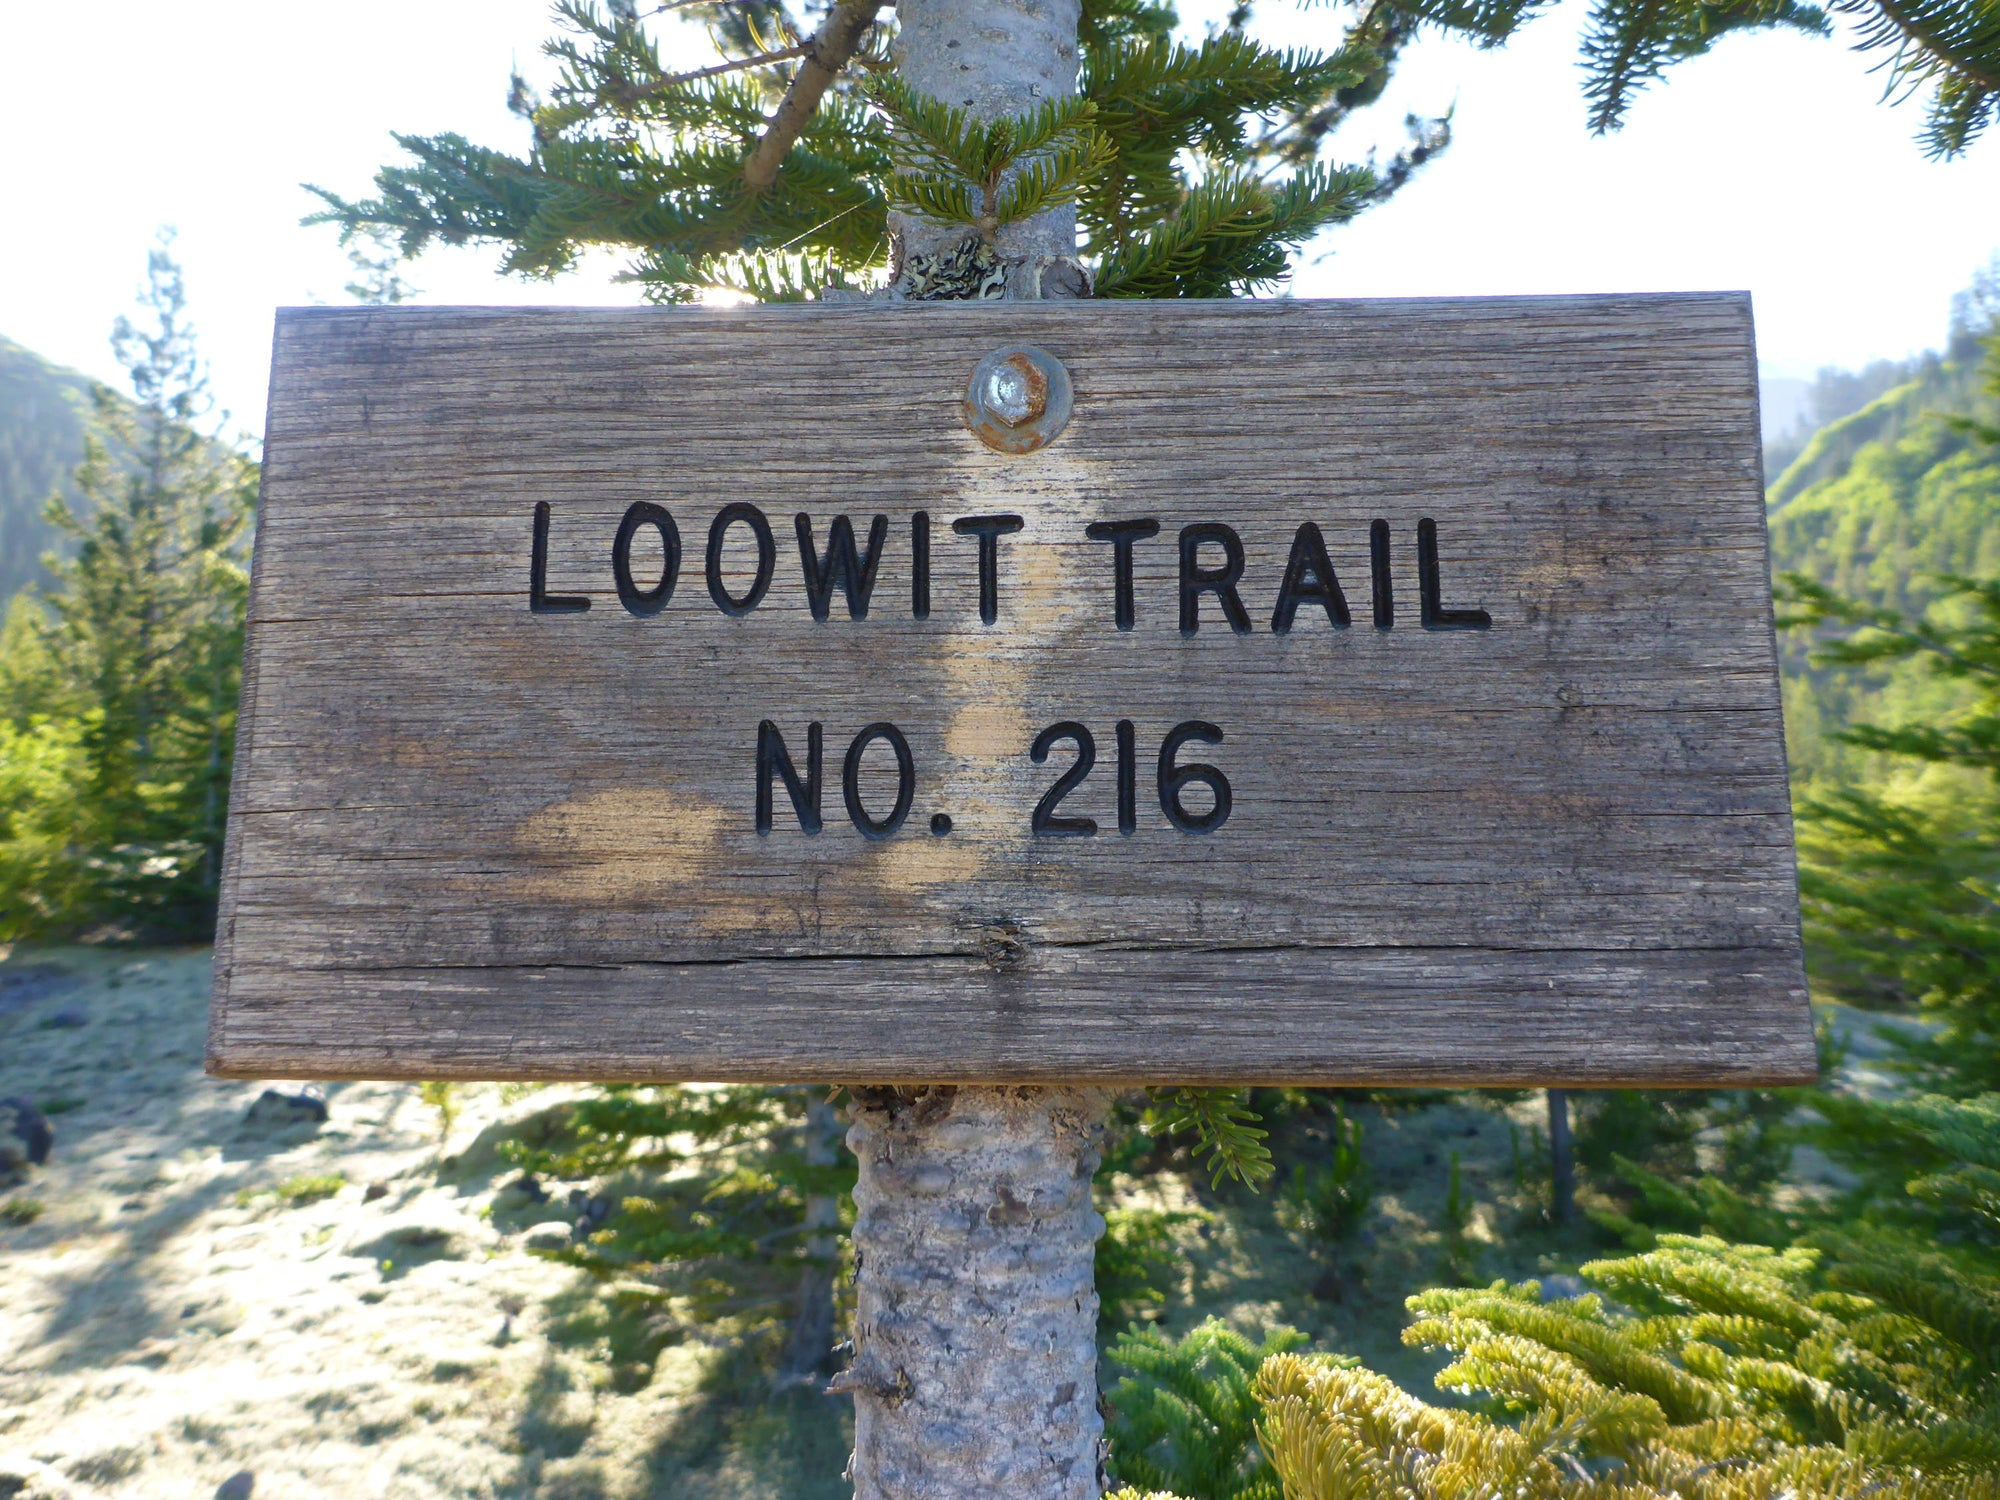 Your Guide to Hiking the Loowit Trail